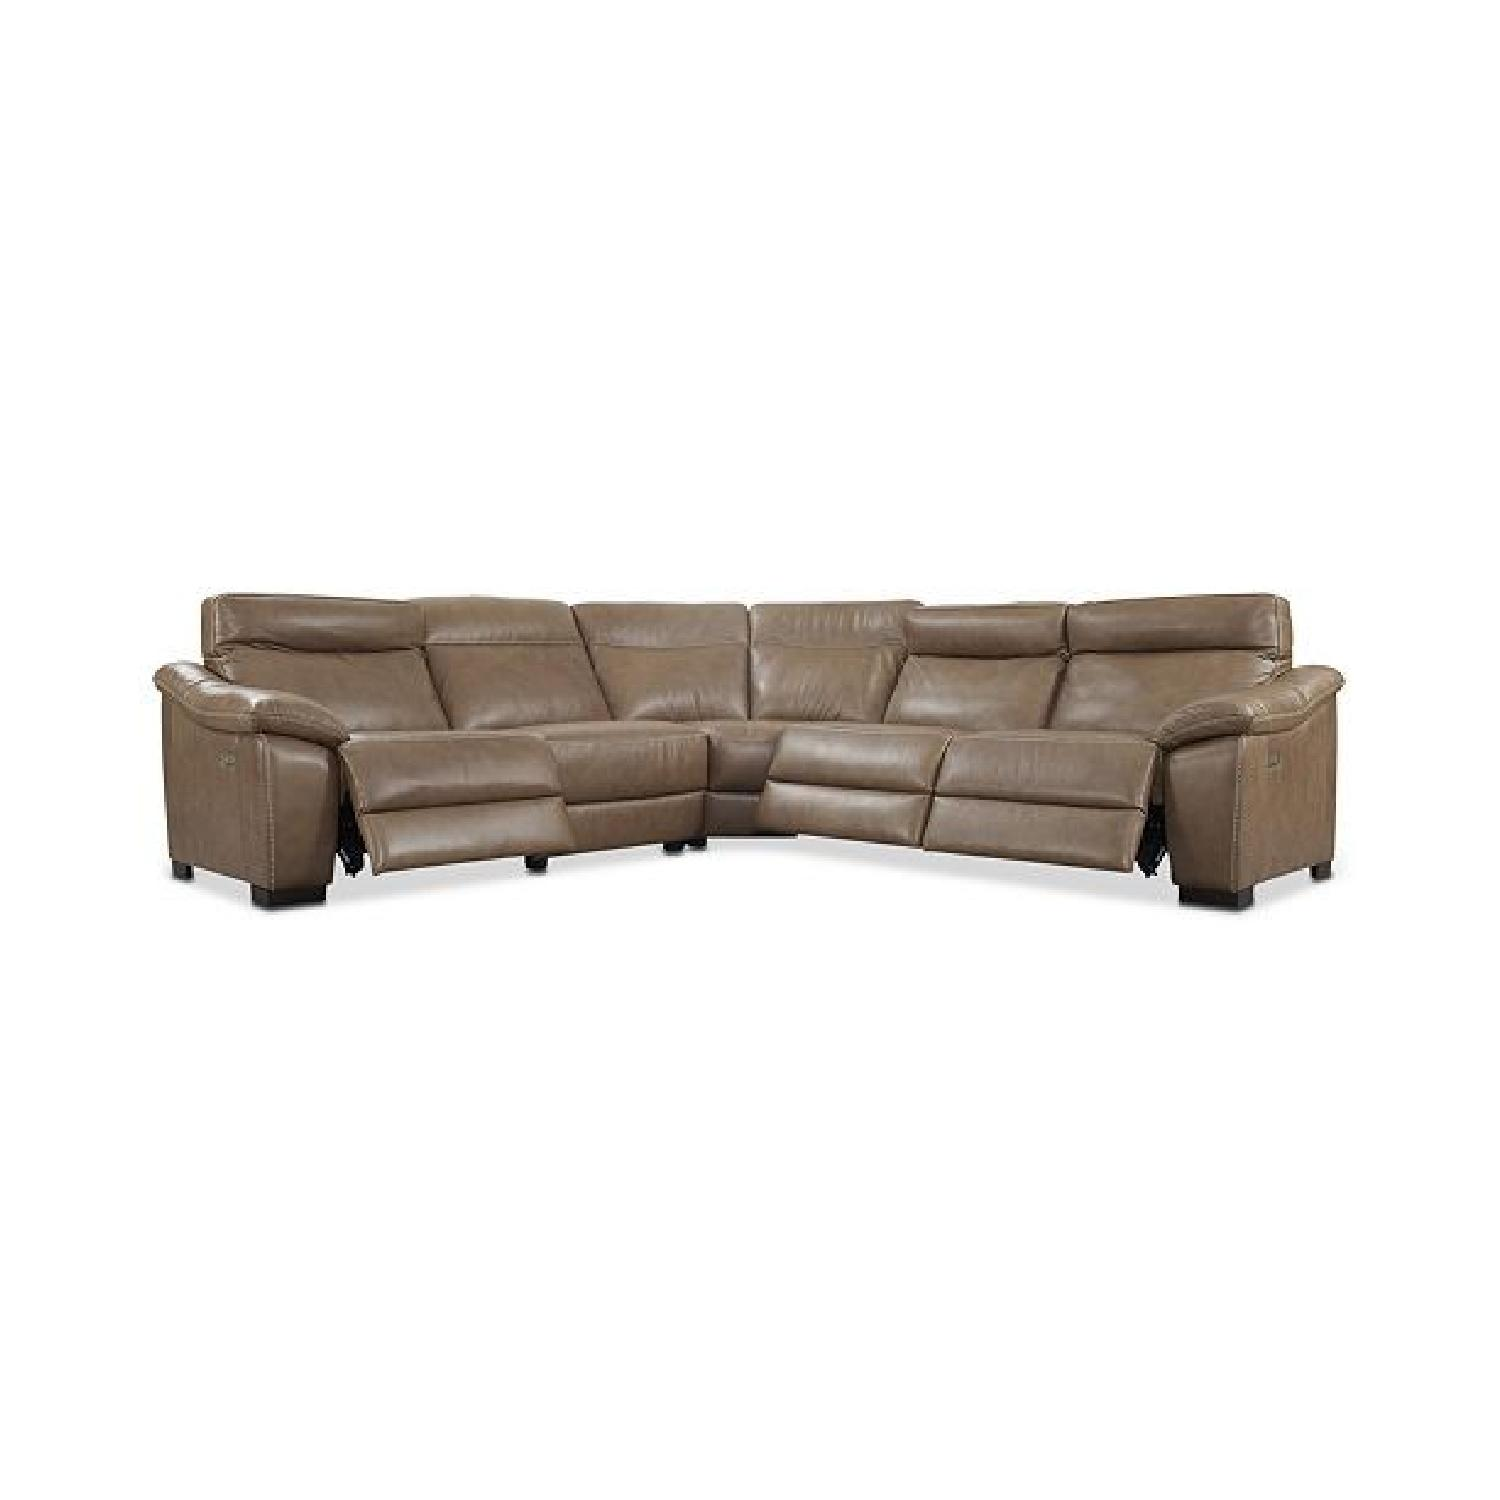 Macy's Leather Sectional Sofa w/ 3 Power Recliners